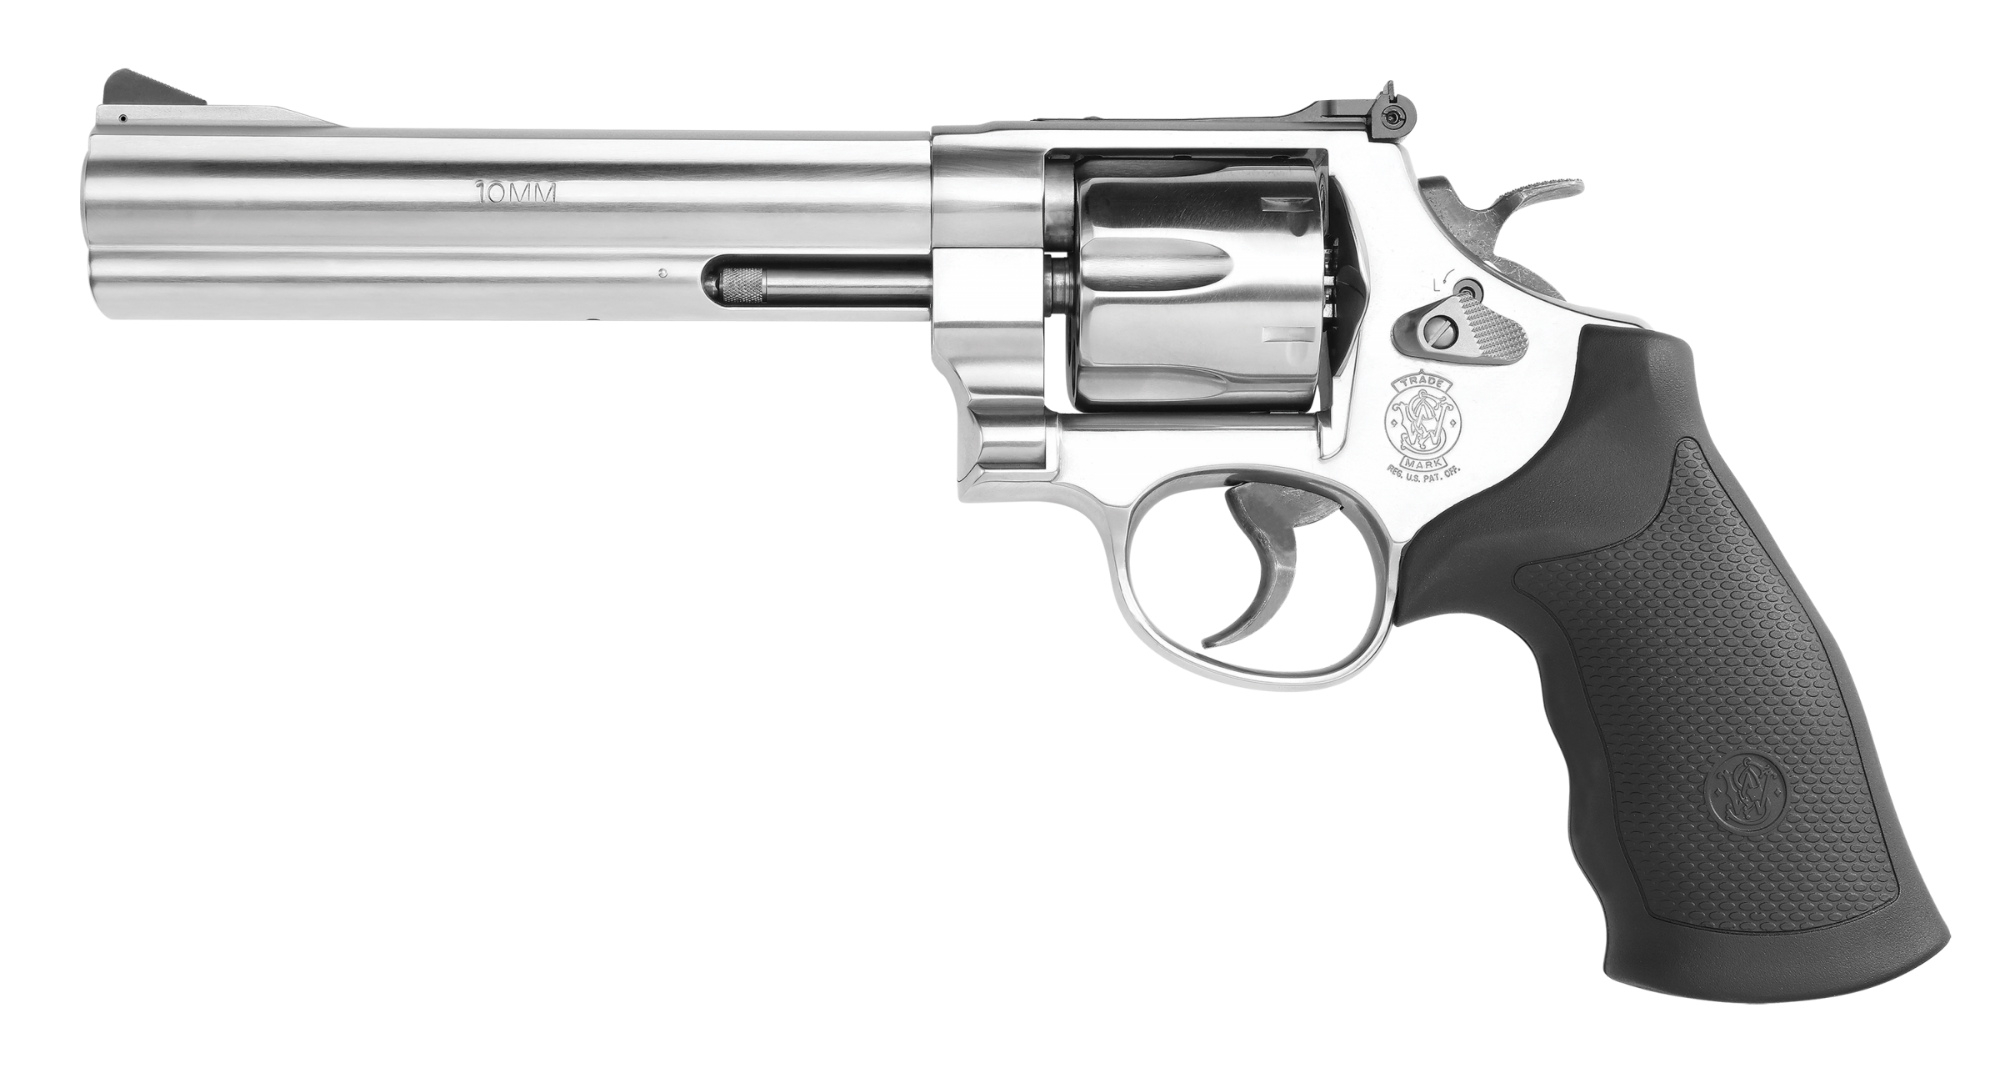 The Smith & Wesson stainless steel Model 610 revolver, left side view